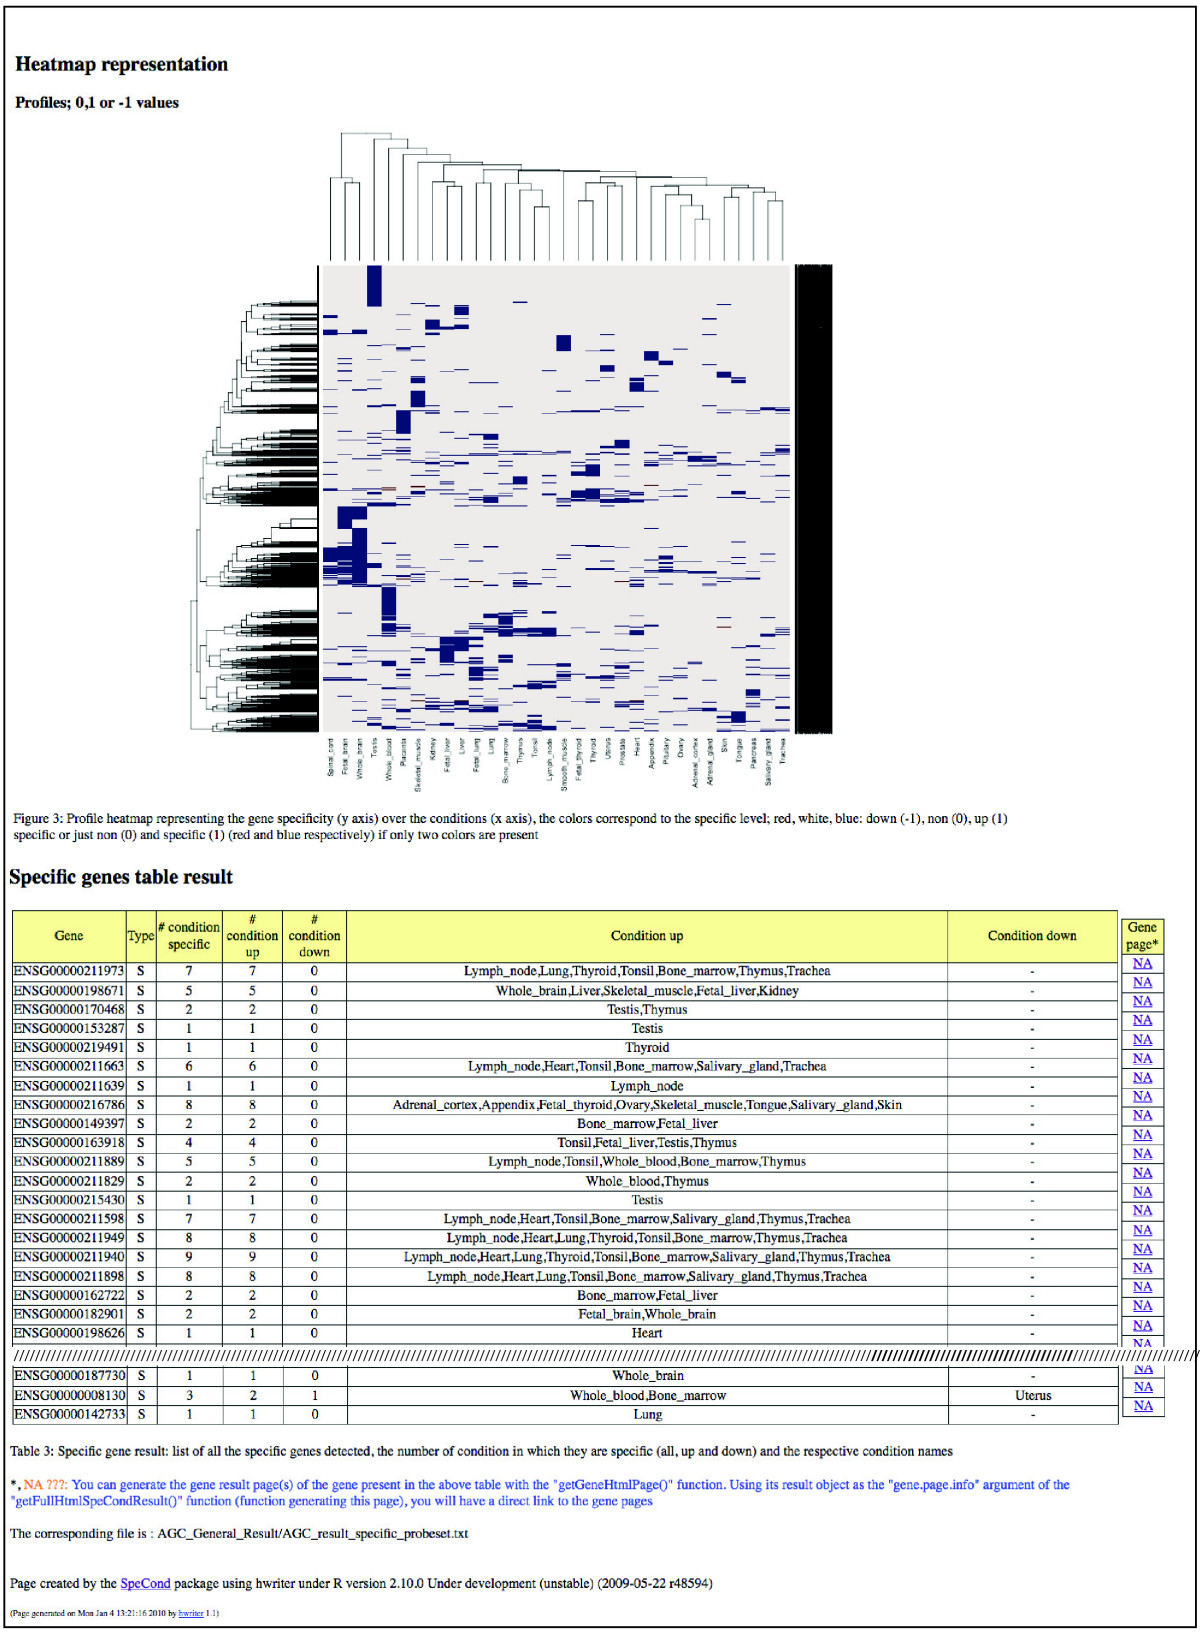 https://static-content.springer.com/image/art%3A10.1186%2Fgb-2011-12-10-r101/MediaObjects/13059_2011_Article_2700_Fig6_HTML.jpg